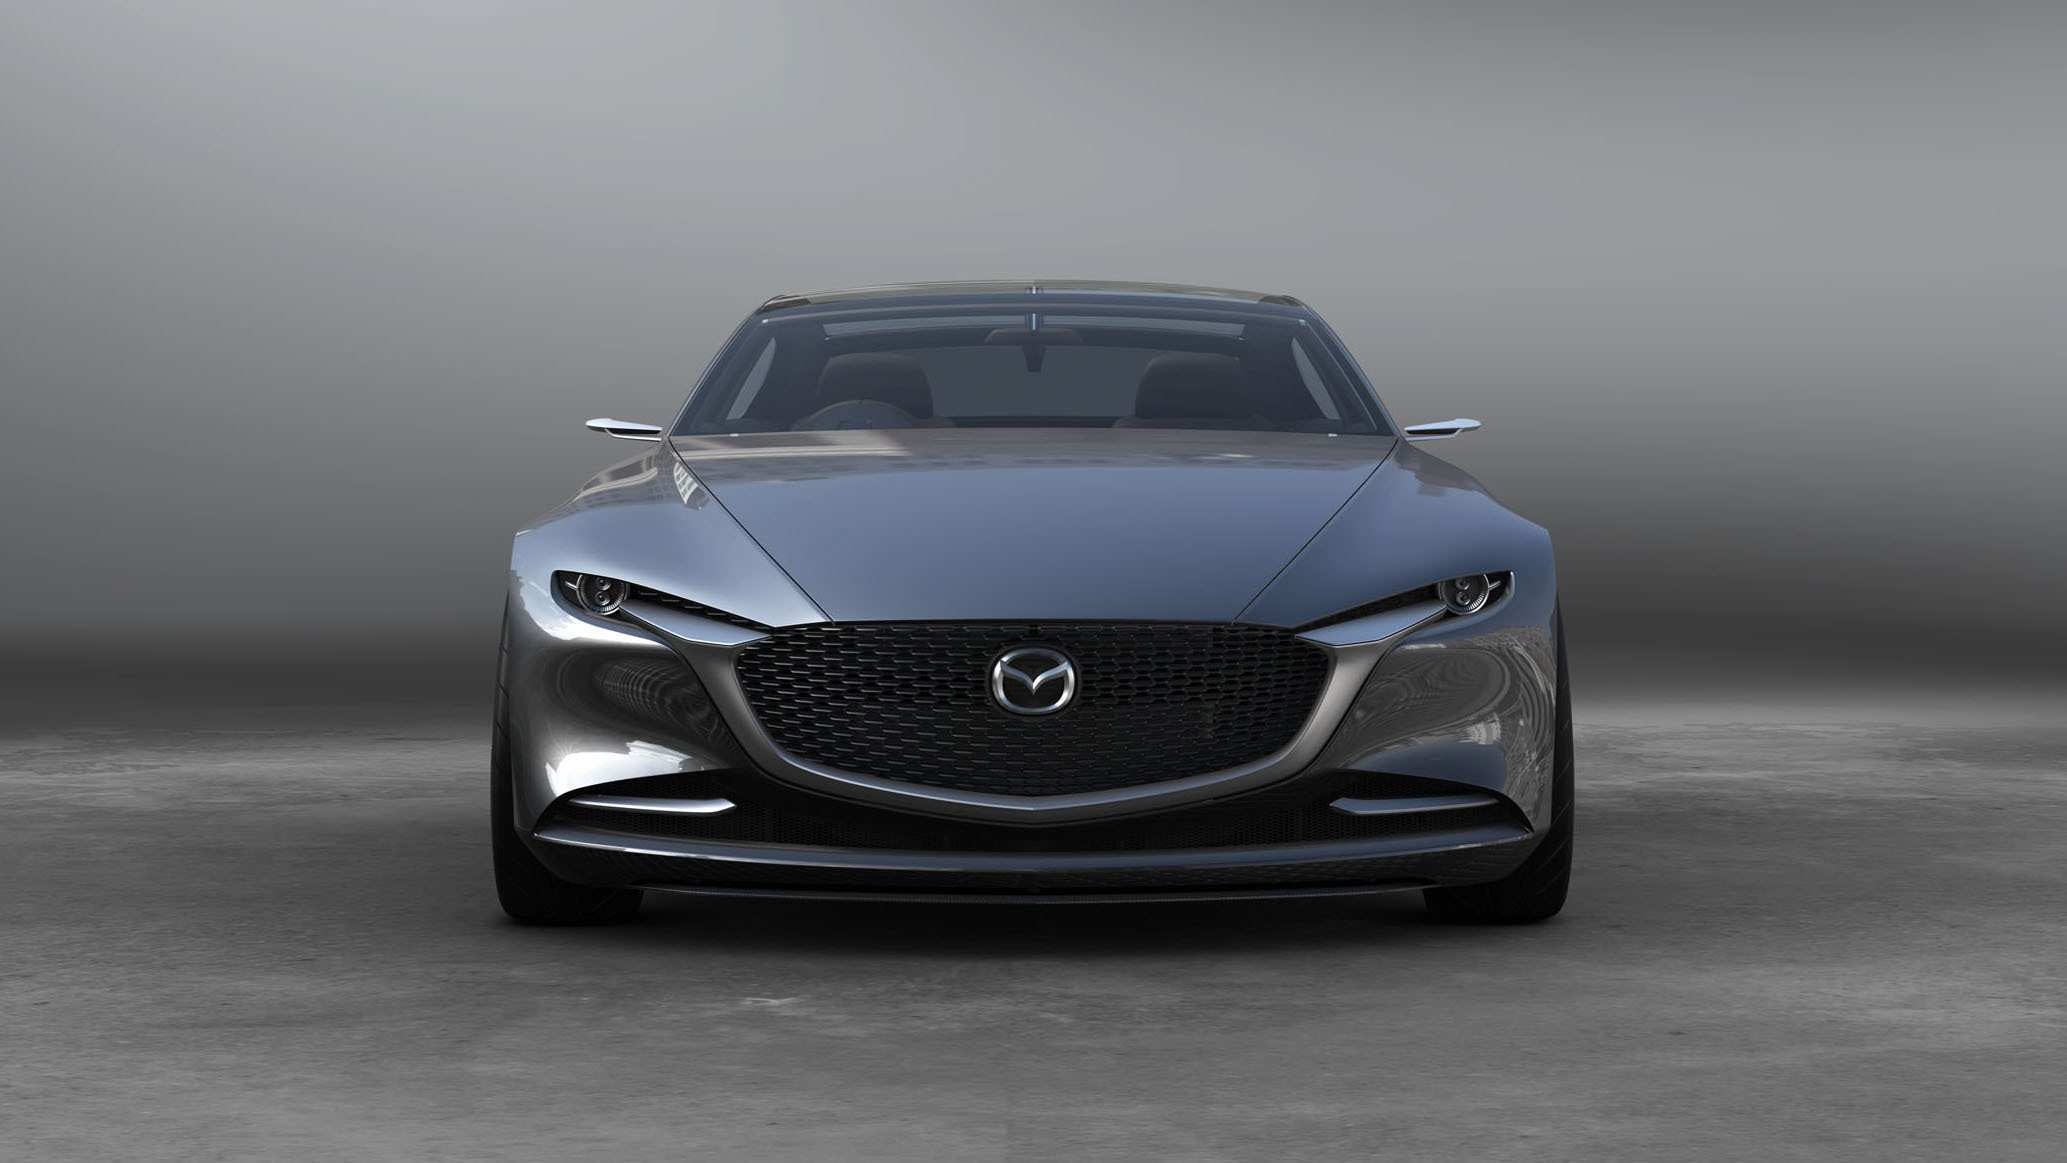 46 The New Conceptos Mazda 2020 Research New for New Conceptos Mazda 2020